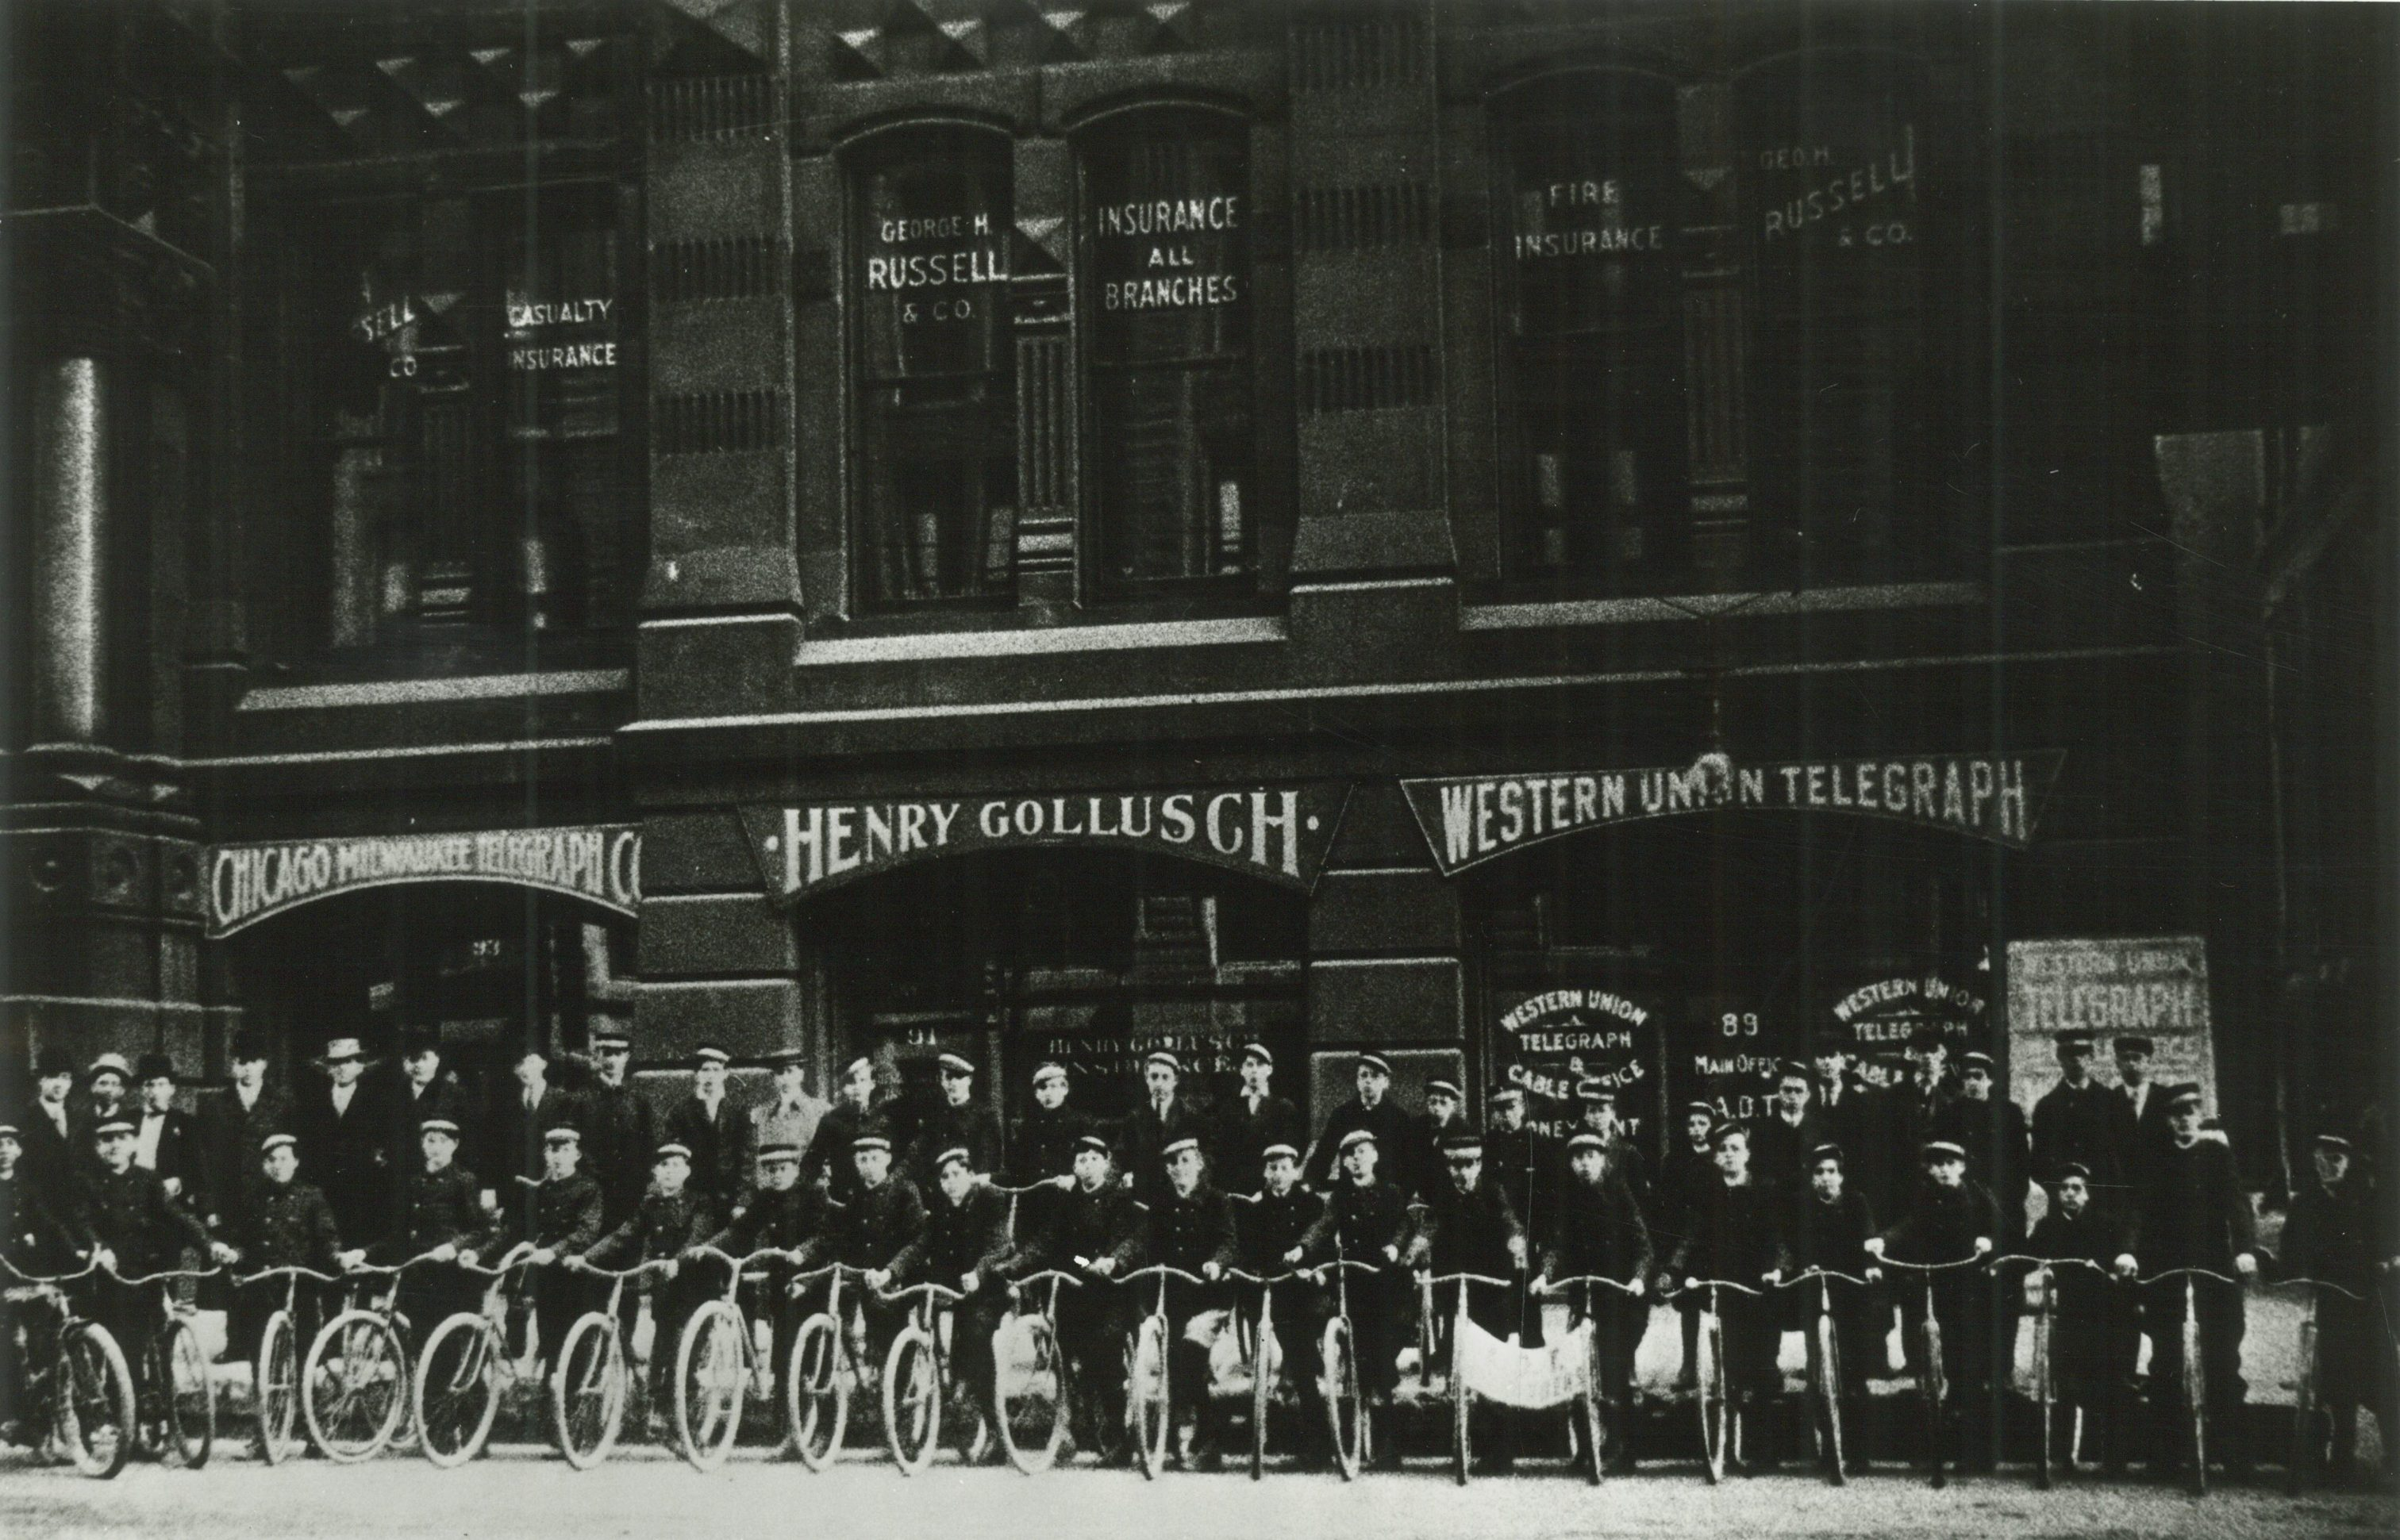 As telecommunications networks developed, they depended less and less on humans to complete the system. This 1909 photograph shows bicycle-riding messengers who delivered telegrams to their final destinations.